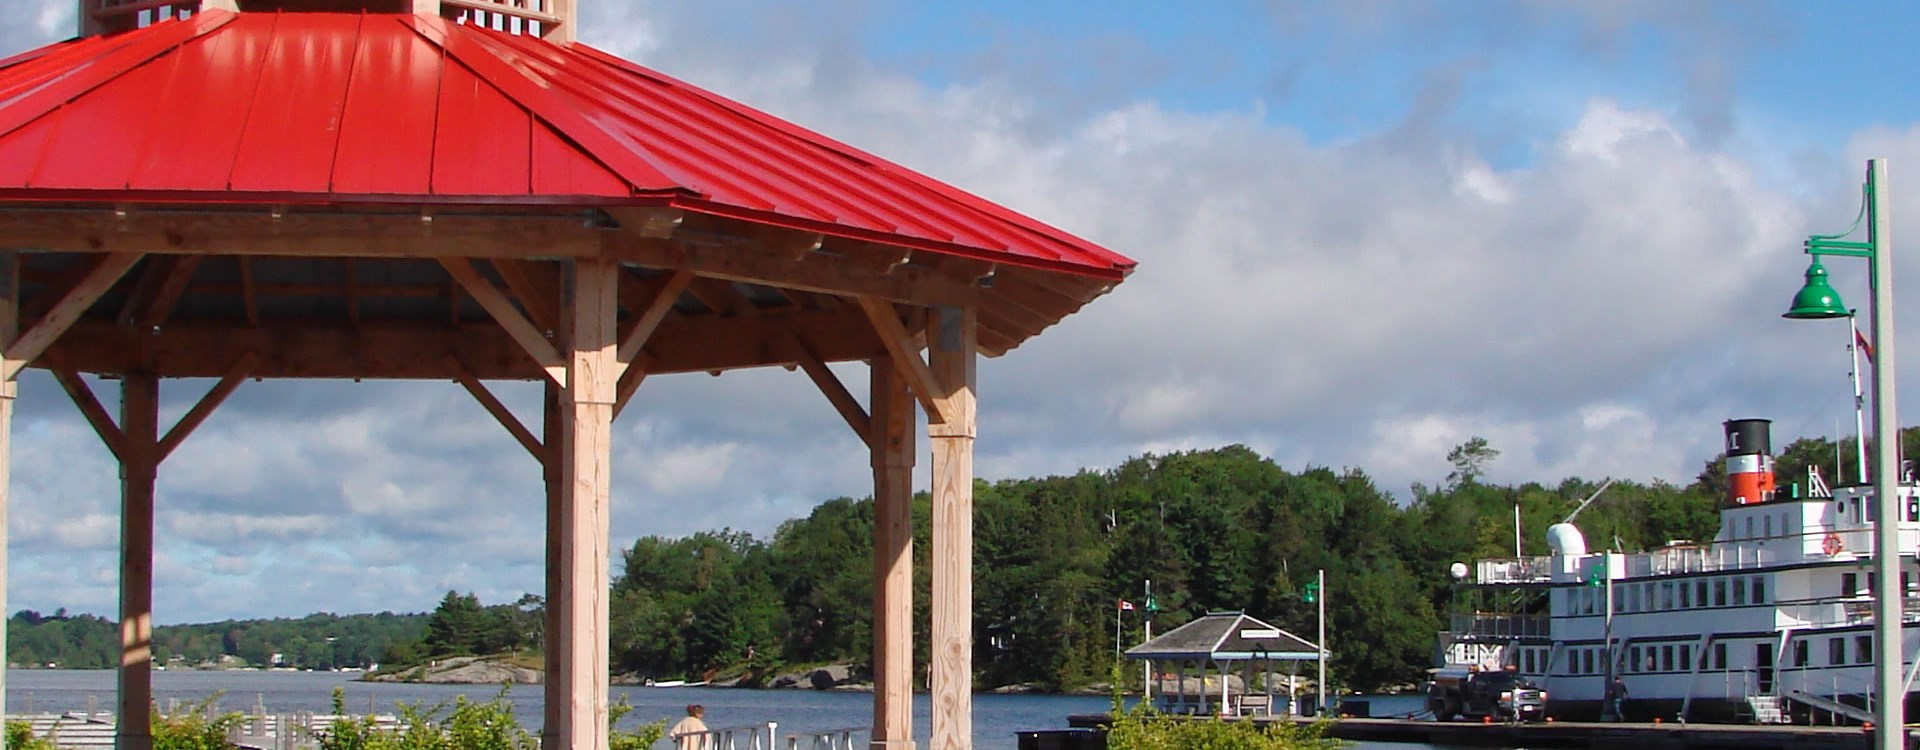 A.P. Cockburn Square, Large gazebo structure with red steel roof at Muskoka Wharf